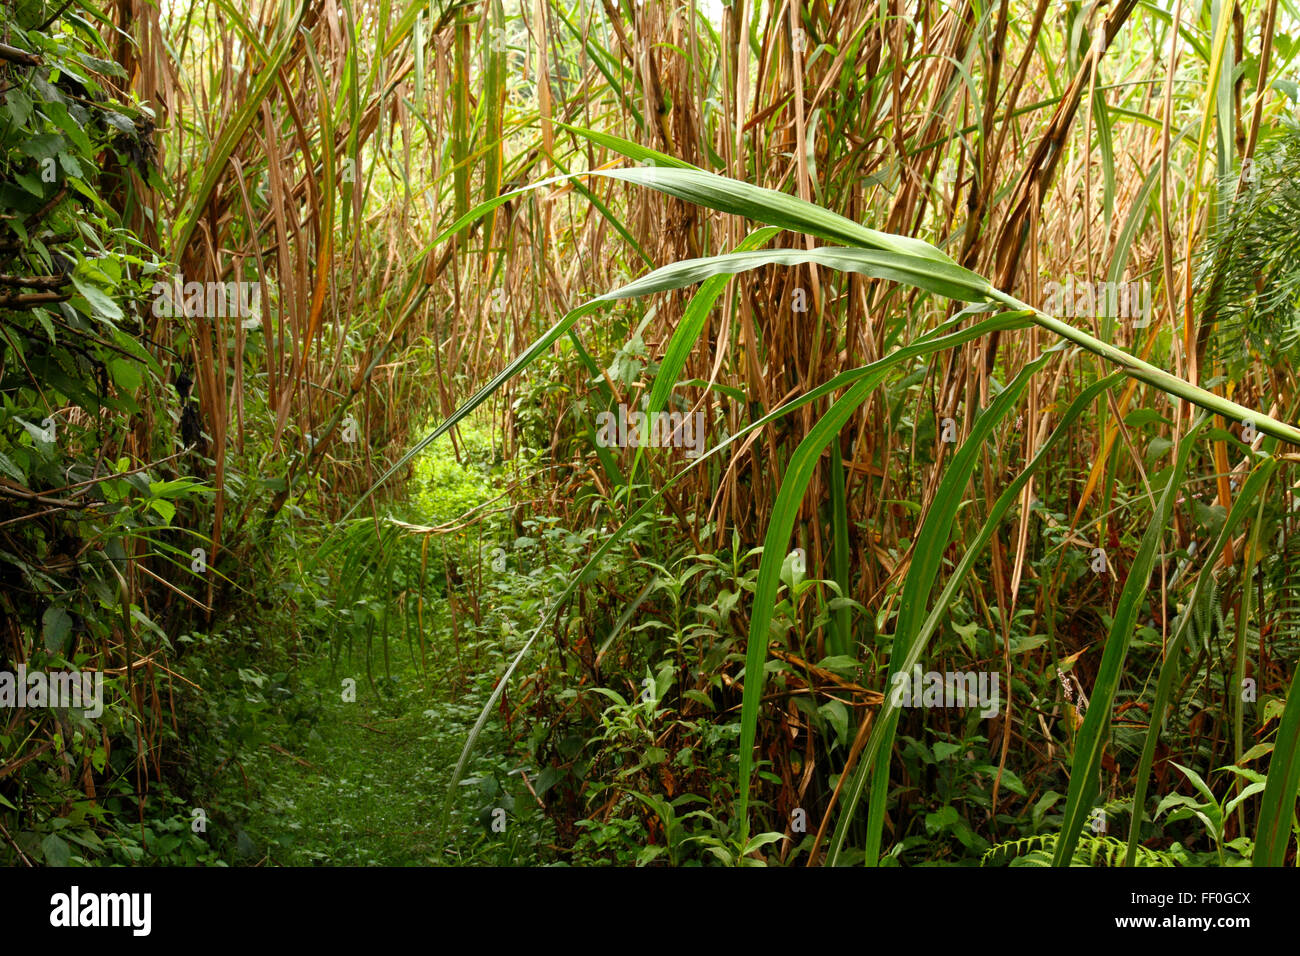 A trail through the jungle thickly overgrown with plants and bushes. - Stock Image